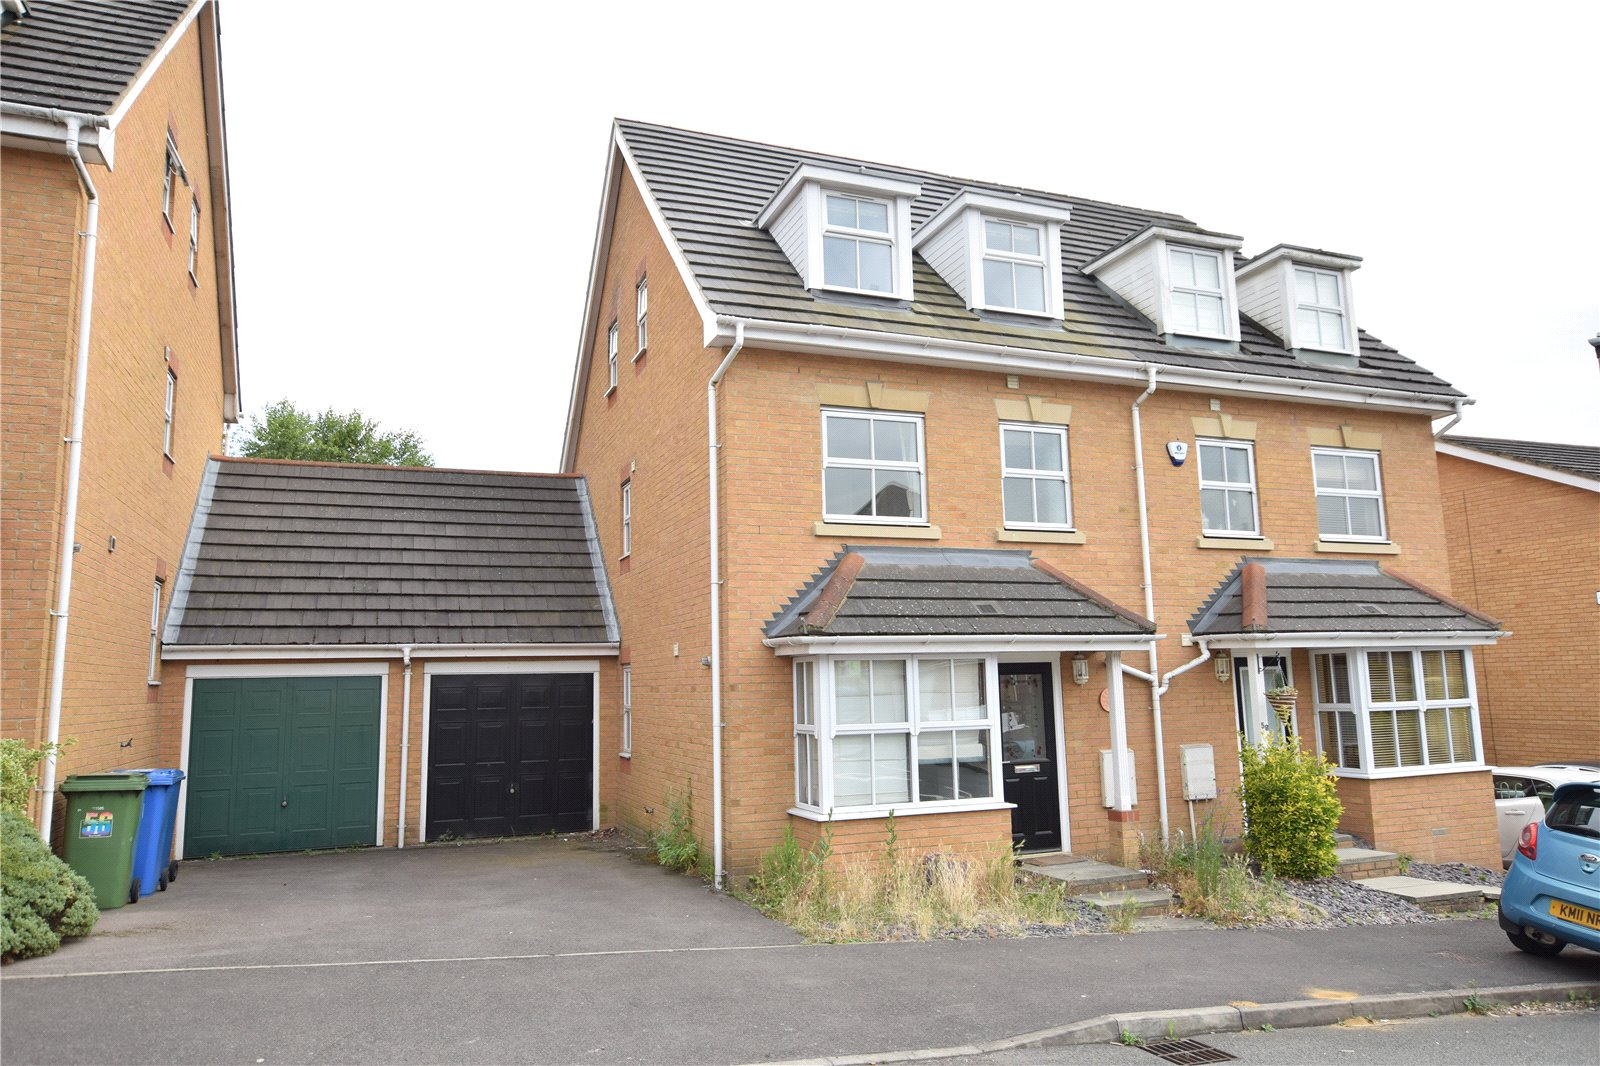 4 Bedrooms Town House for sale in Boole Heights, Bracknell, Berkshire, RG12